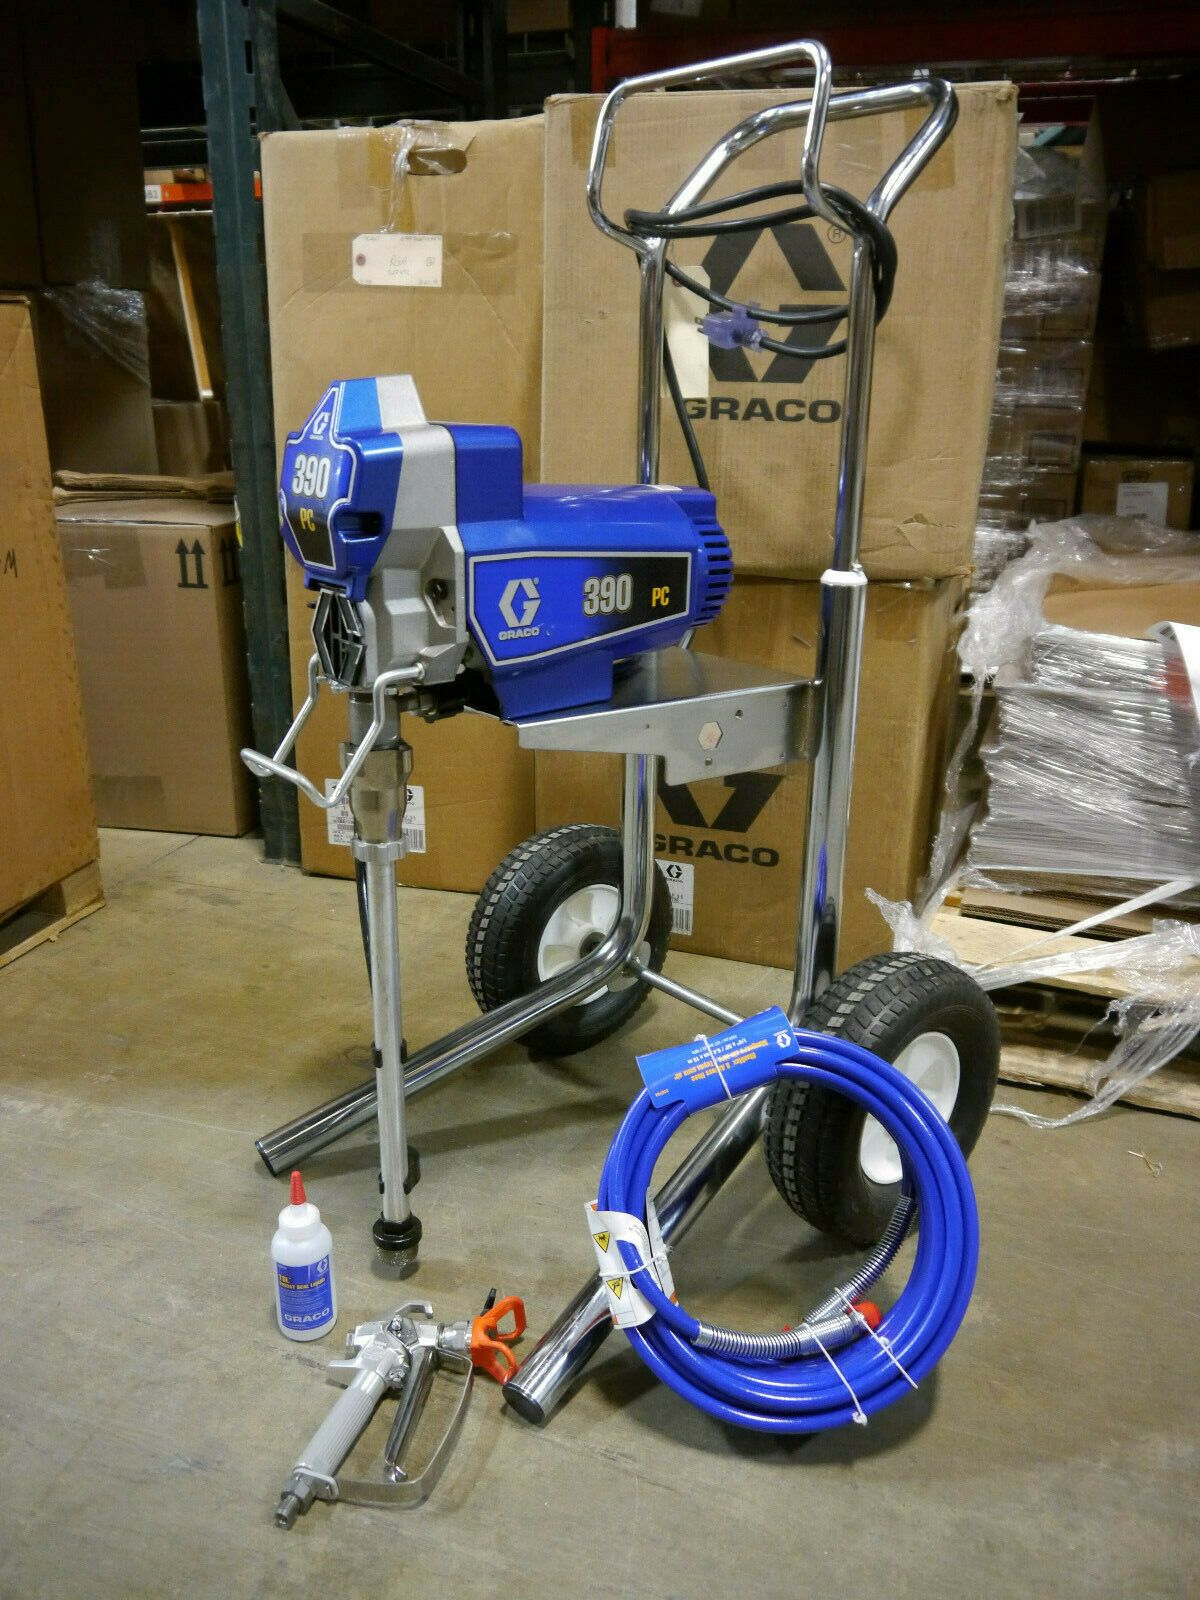 Graco 390 Pc Pro Connect Hiboy Electric Airless Sprayer 17c313 Ready To Ship 829 00 Graco Ideas Of Graco Graco In 2020 Graco Paint Sprayer Hvlp Paint Sprayer